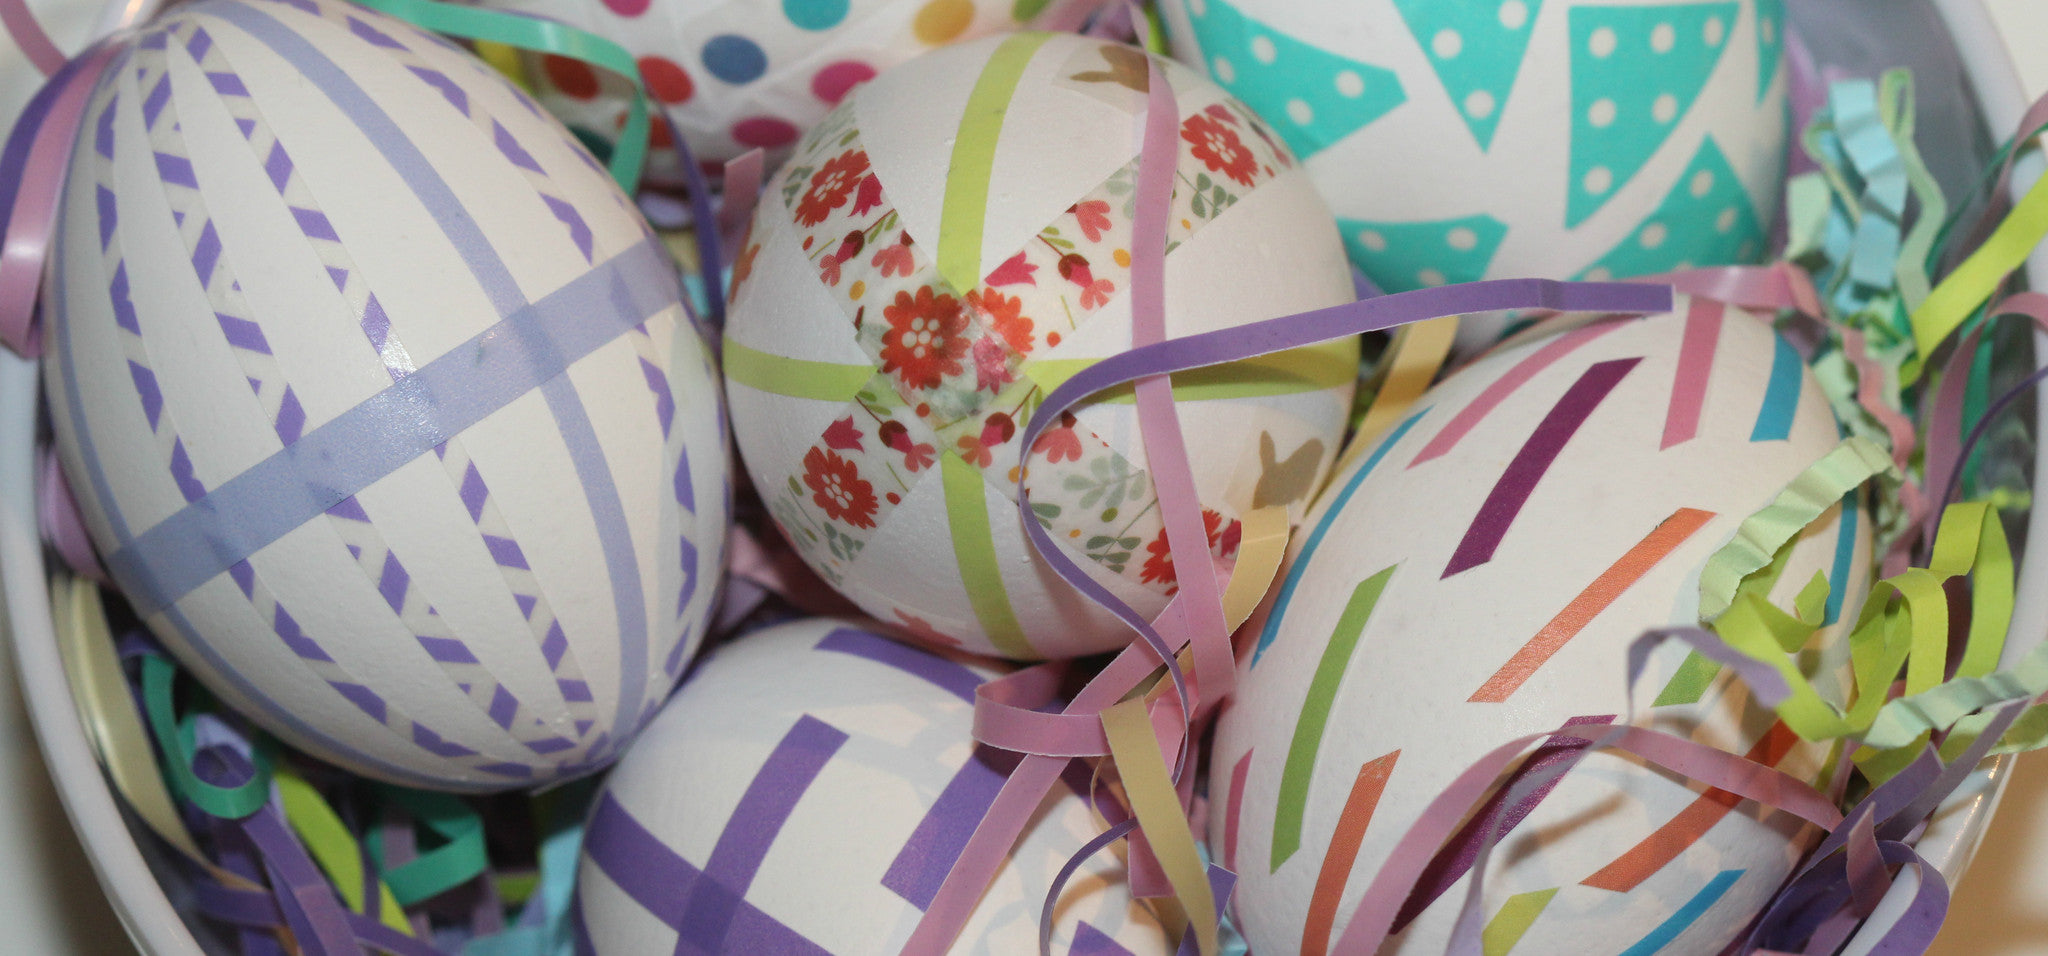 Wonderful Washi Easter Eggs